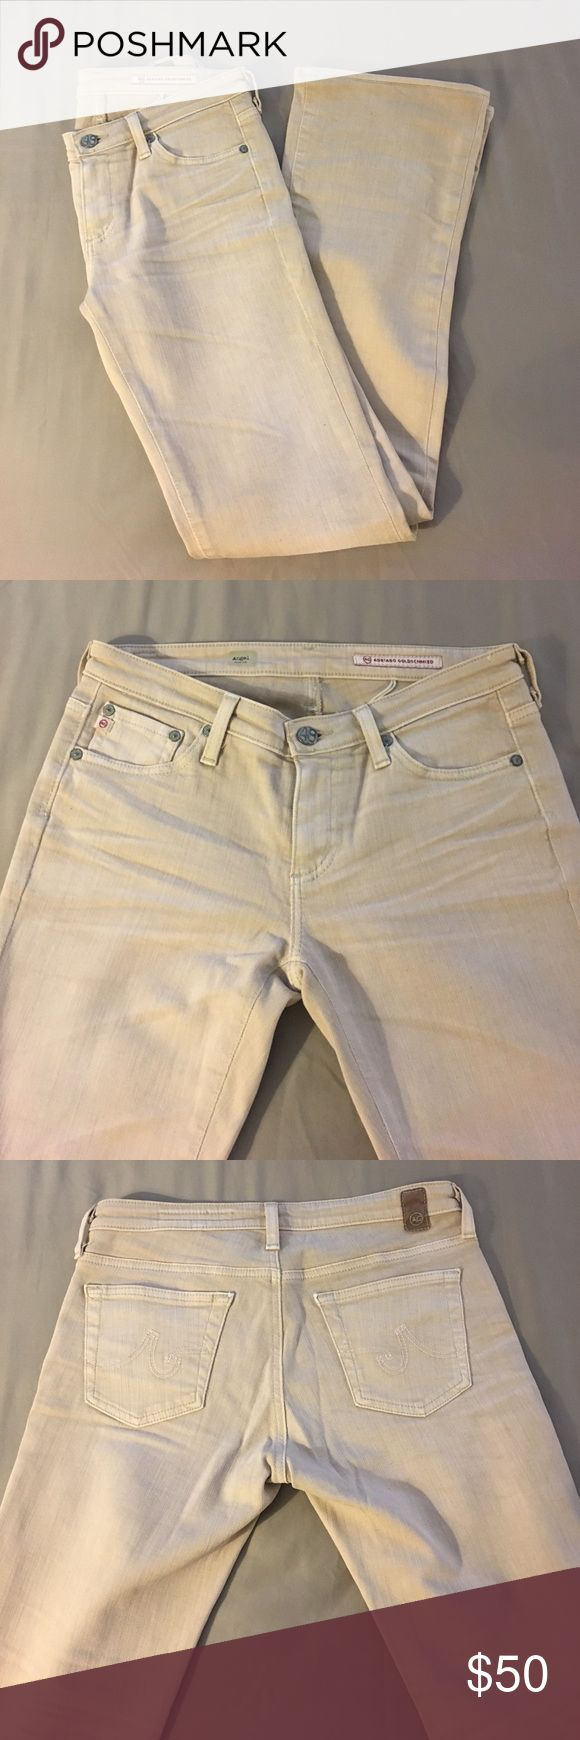 AG Jeans Adriano Goldschmied Women's Jeans size 27R, inseam 32 in. Style -  Angel Bootcut. Color is light tan. Never worn, great condition. AG Adriano Goldschmied Jeans Boot Cut